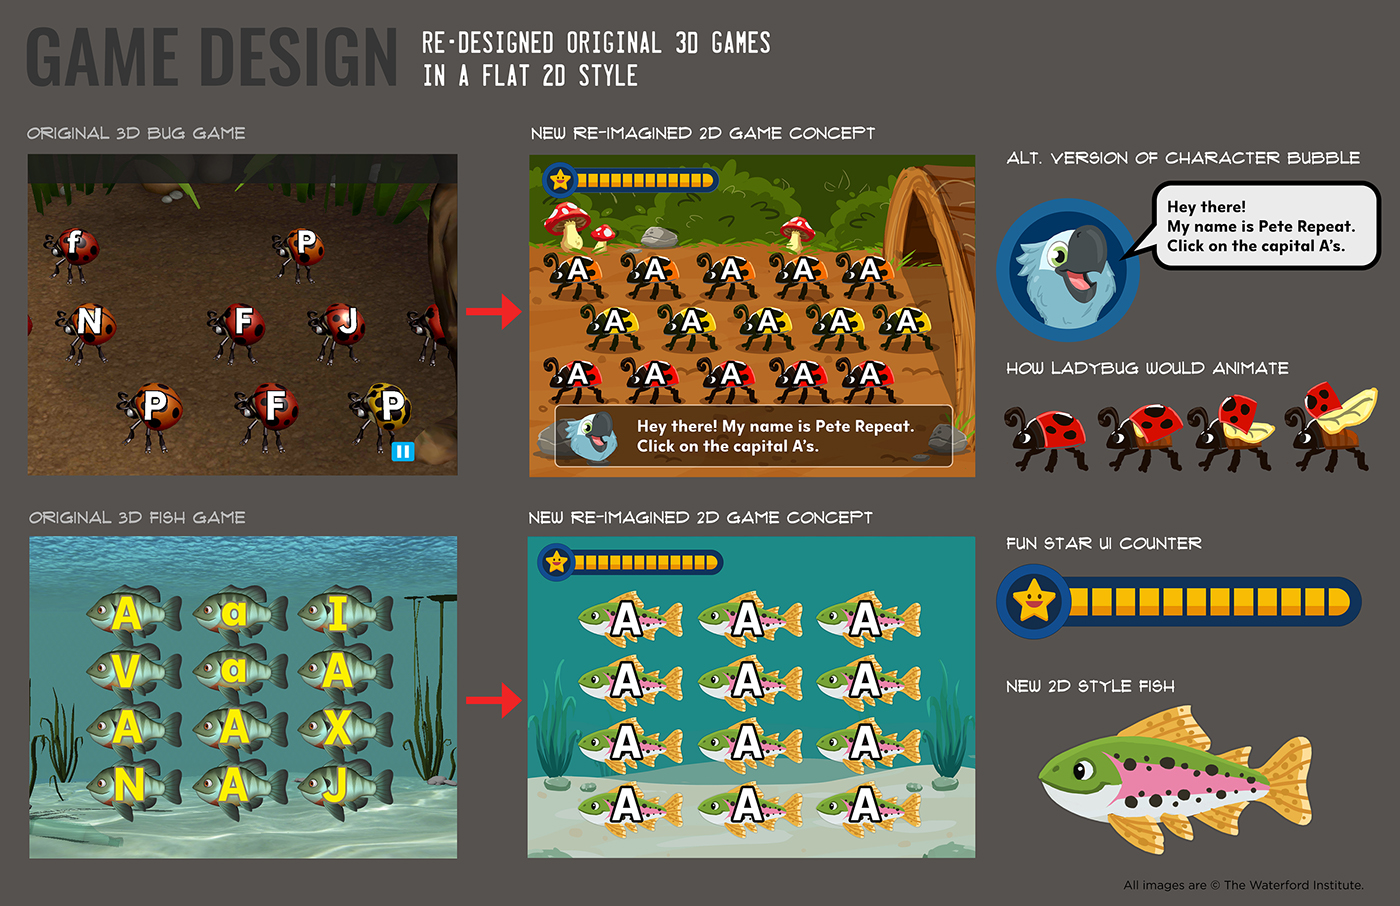 D Game Design The Waterford Institute On Behance - 2d game design